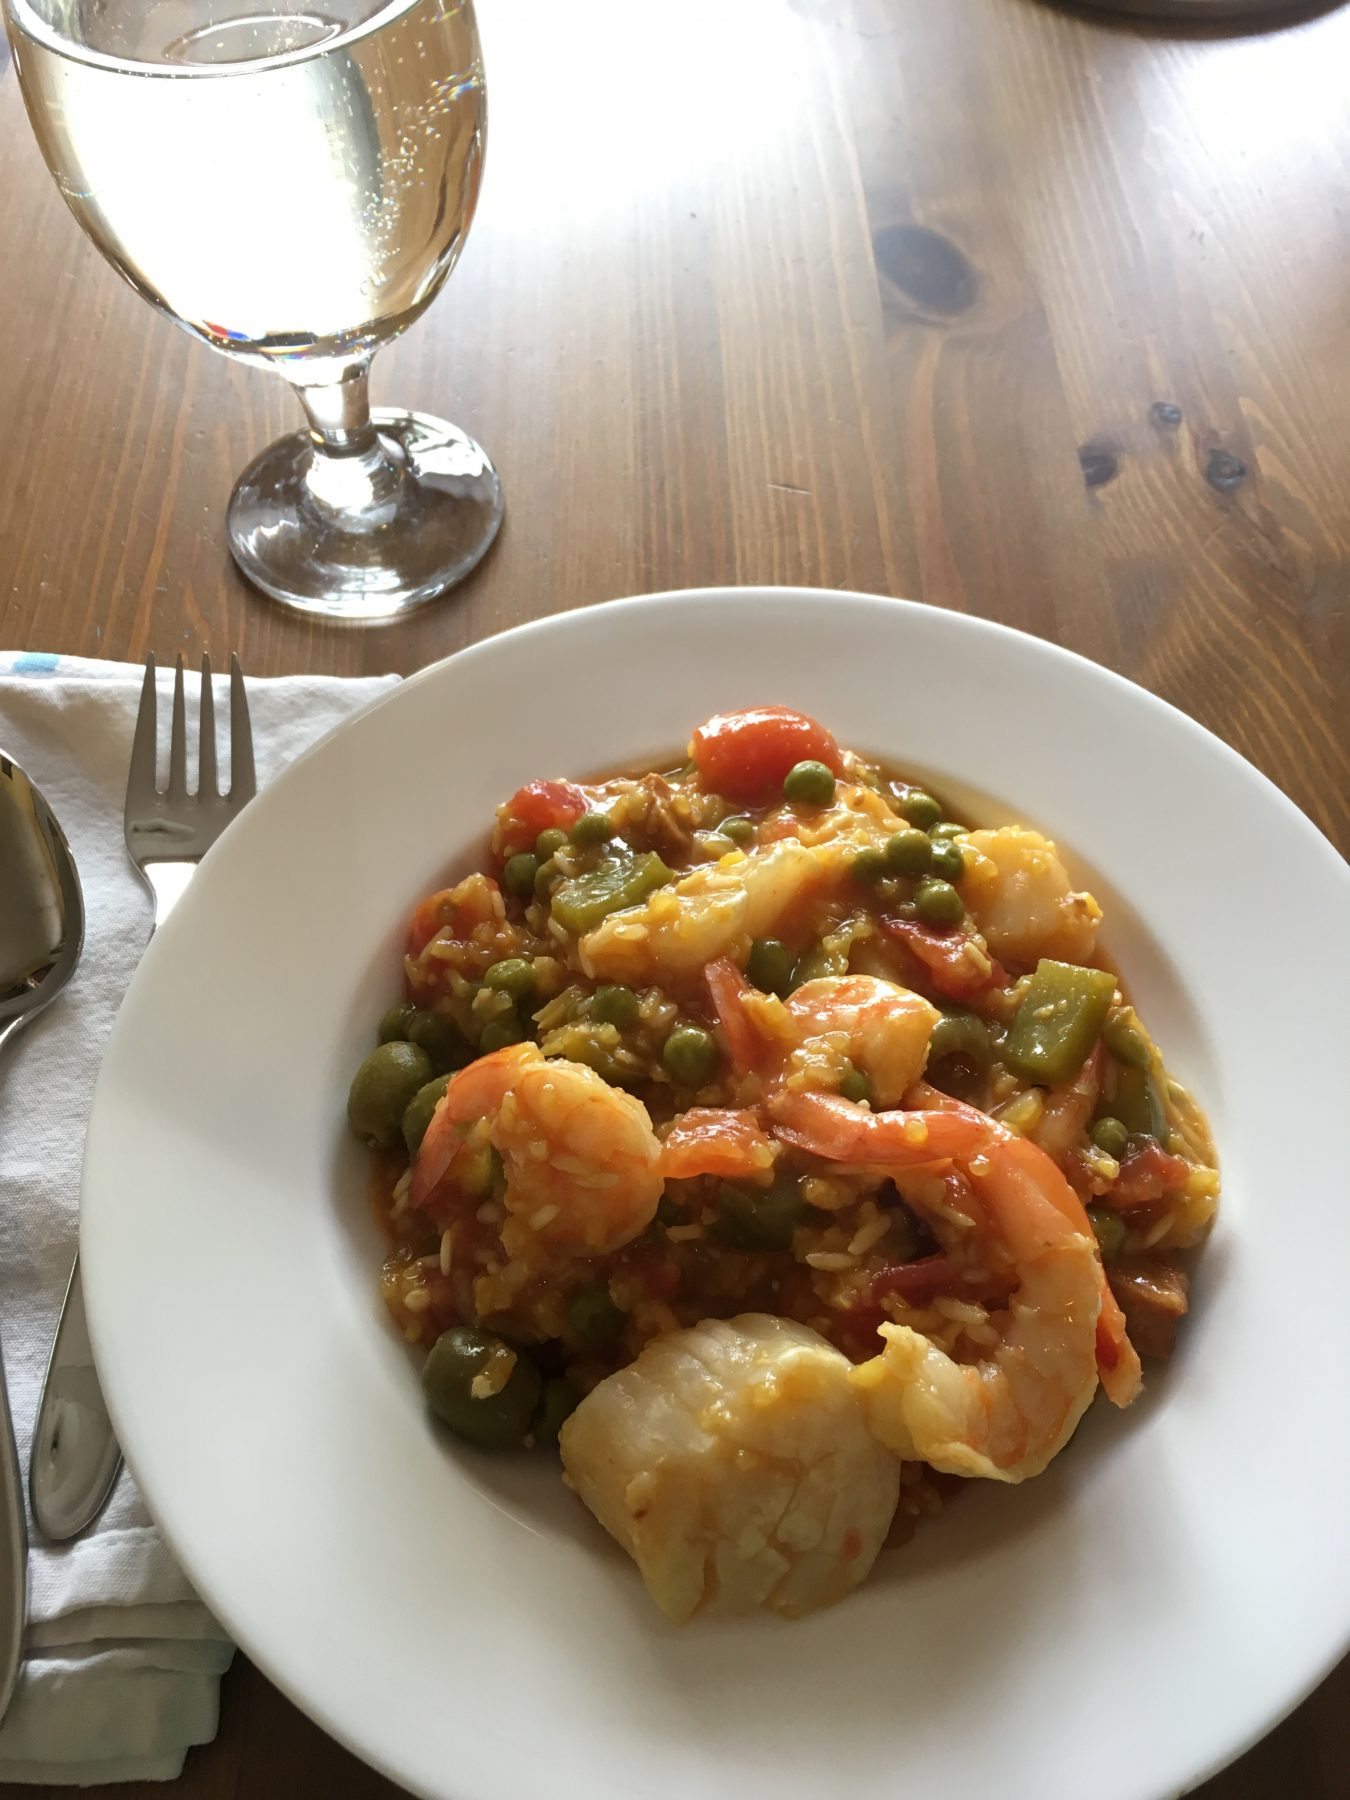 Cheater's Shrimp and Scallop Paella